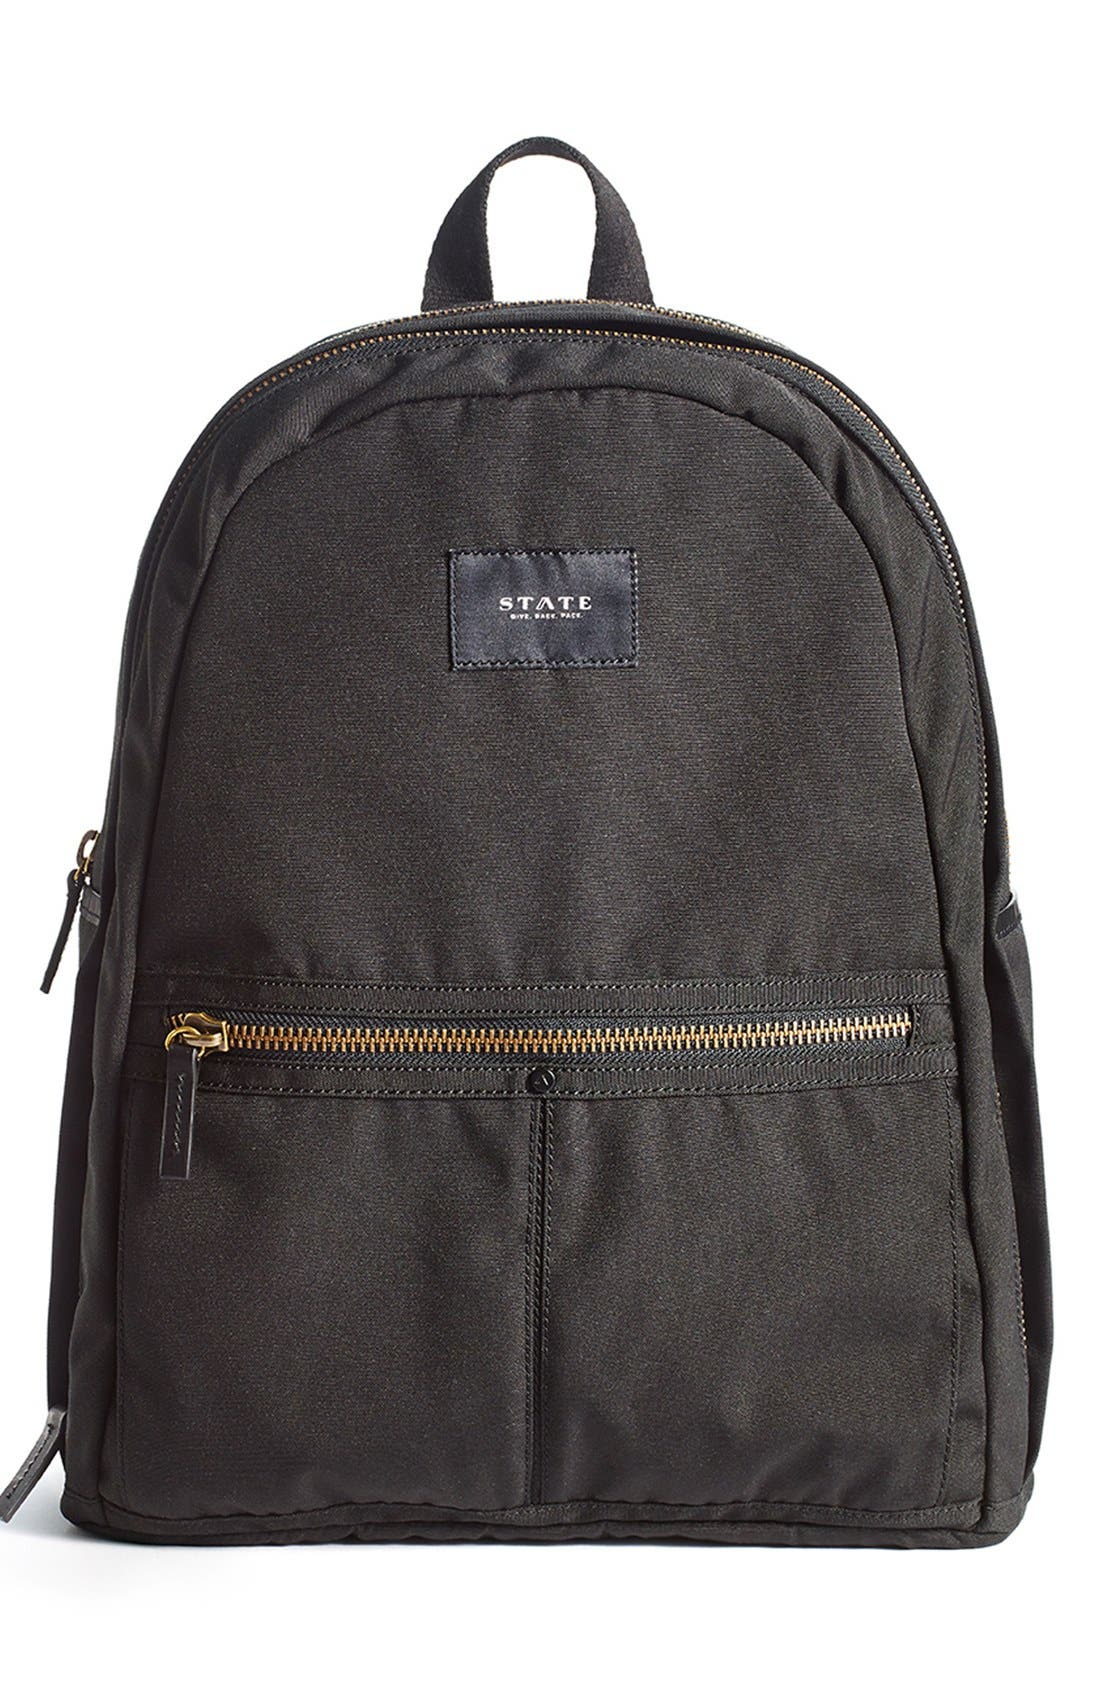 Alternate Image 1 Selected - STATE Bags 'Union' Water Resistant Backpack